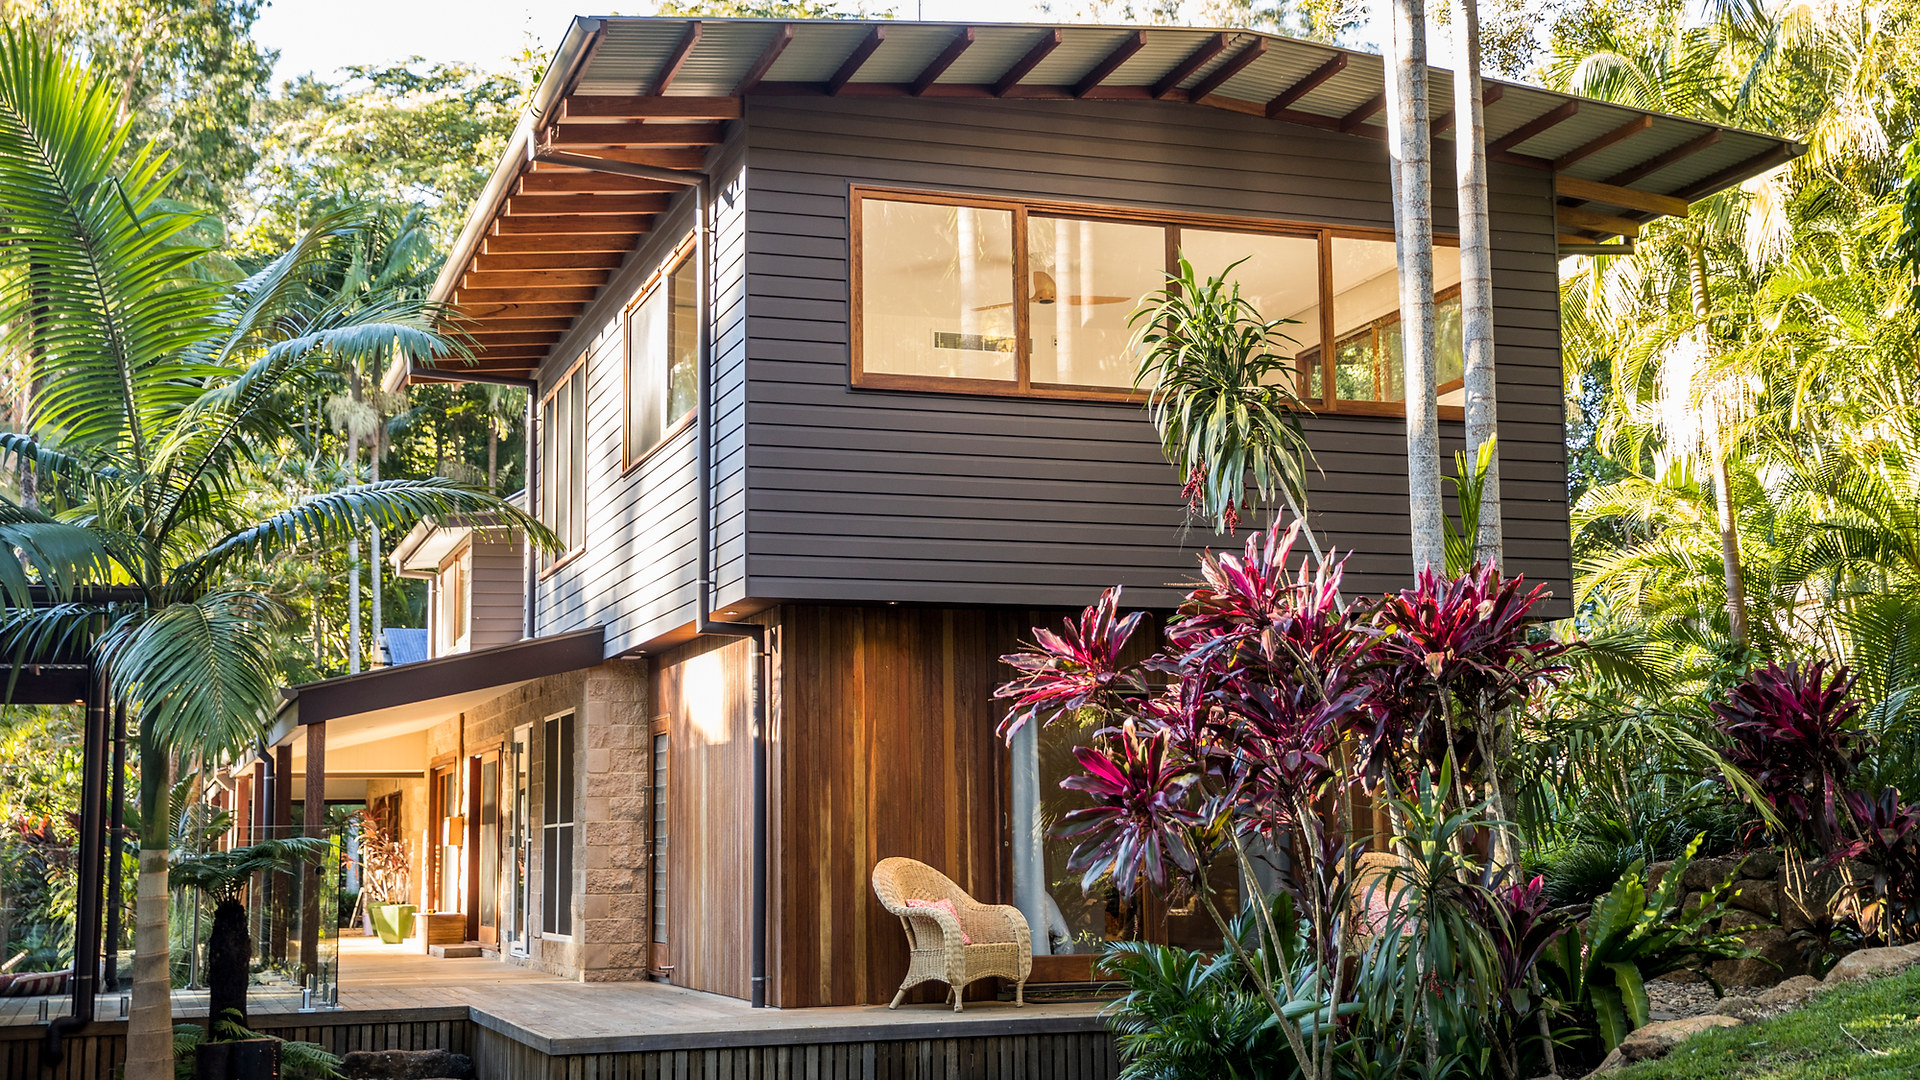 Figtree House